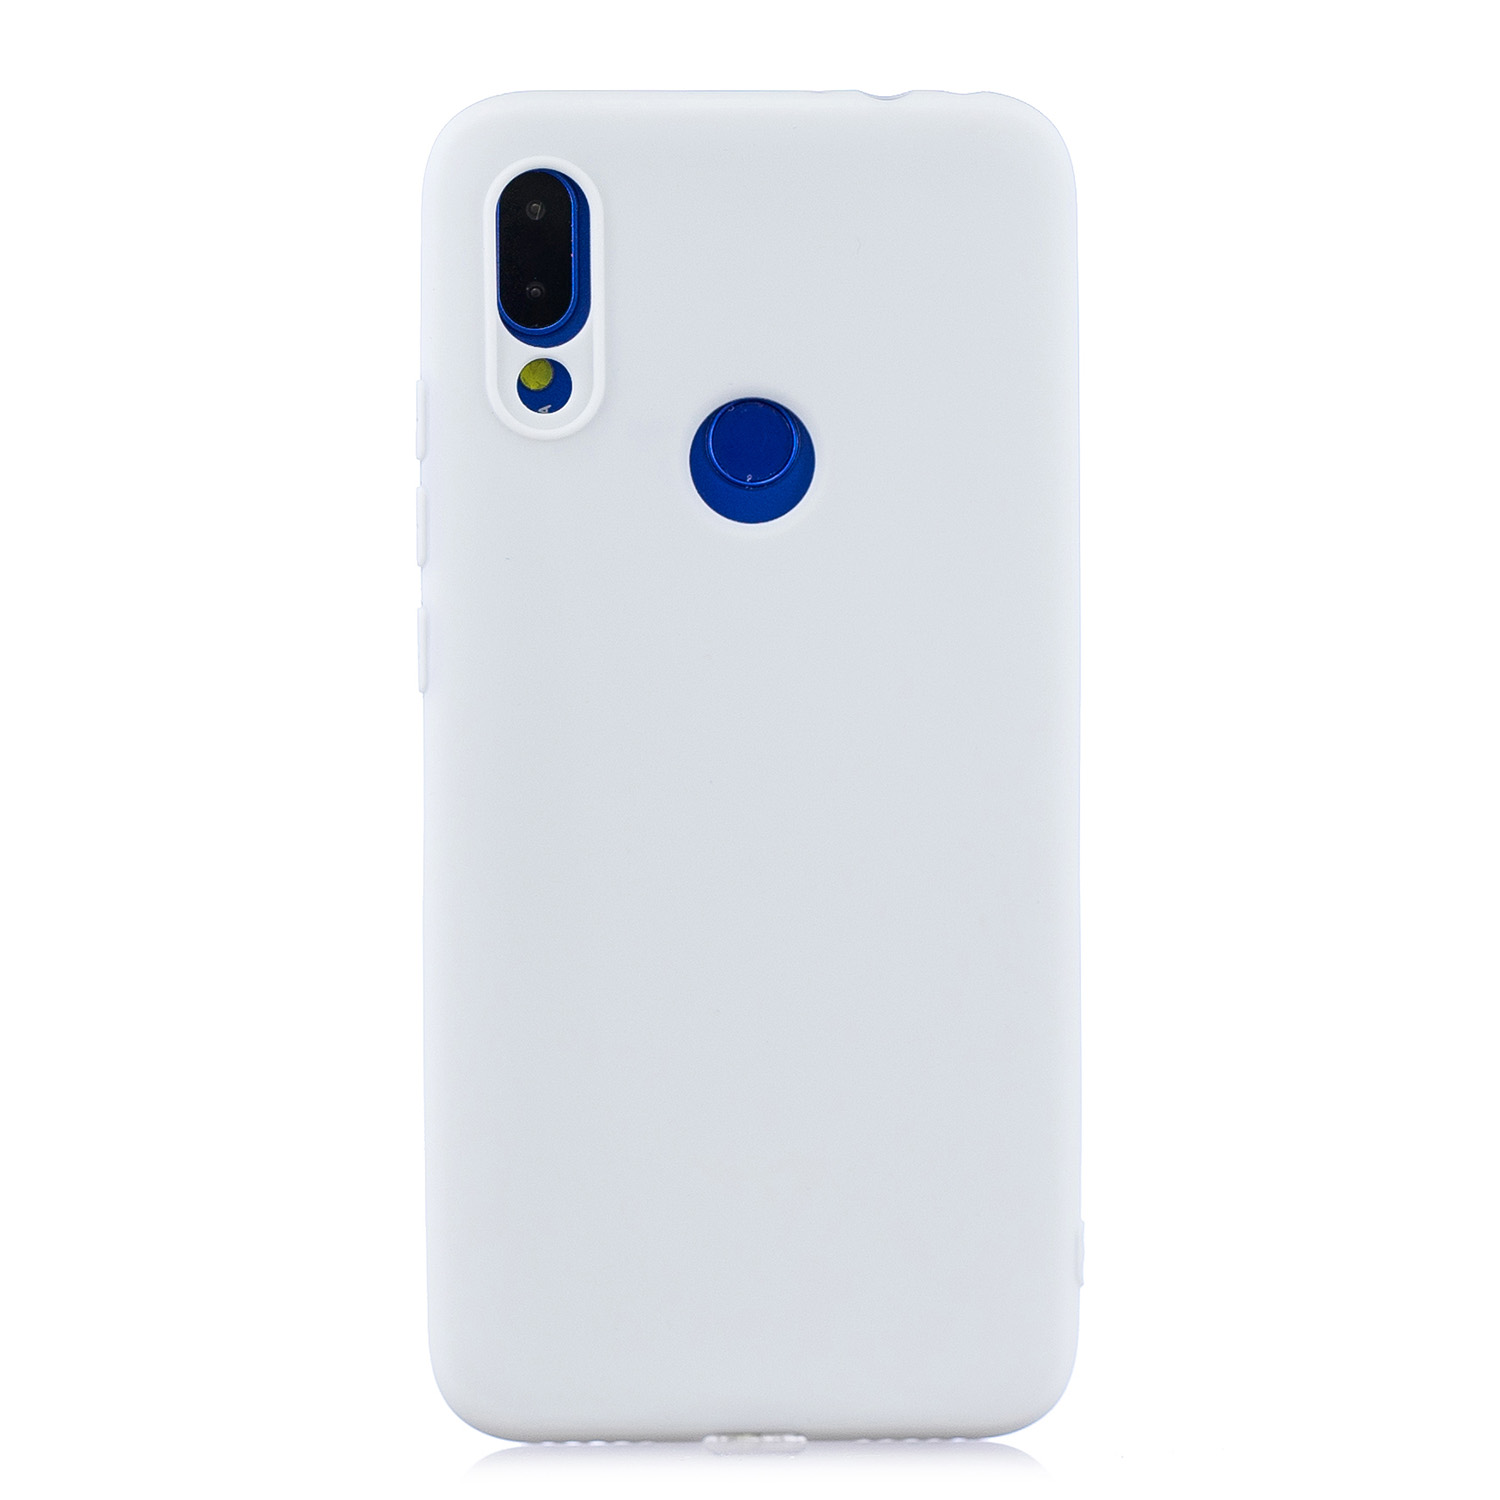 For Redmi note 7 Lovely Candy Color Matte TPU Anti-scratch Non-slip Protective Cover Back Case white